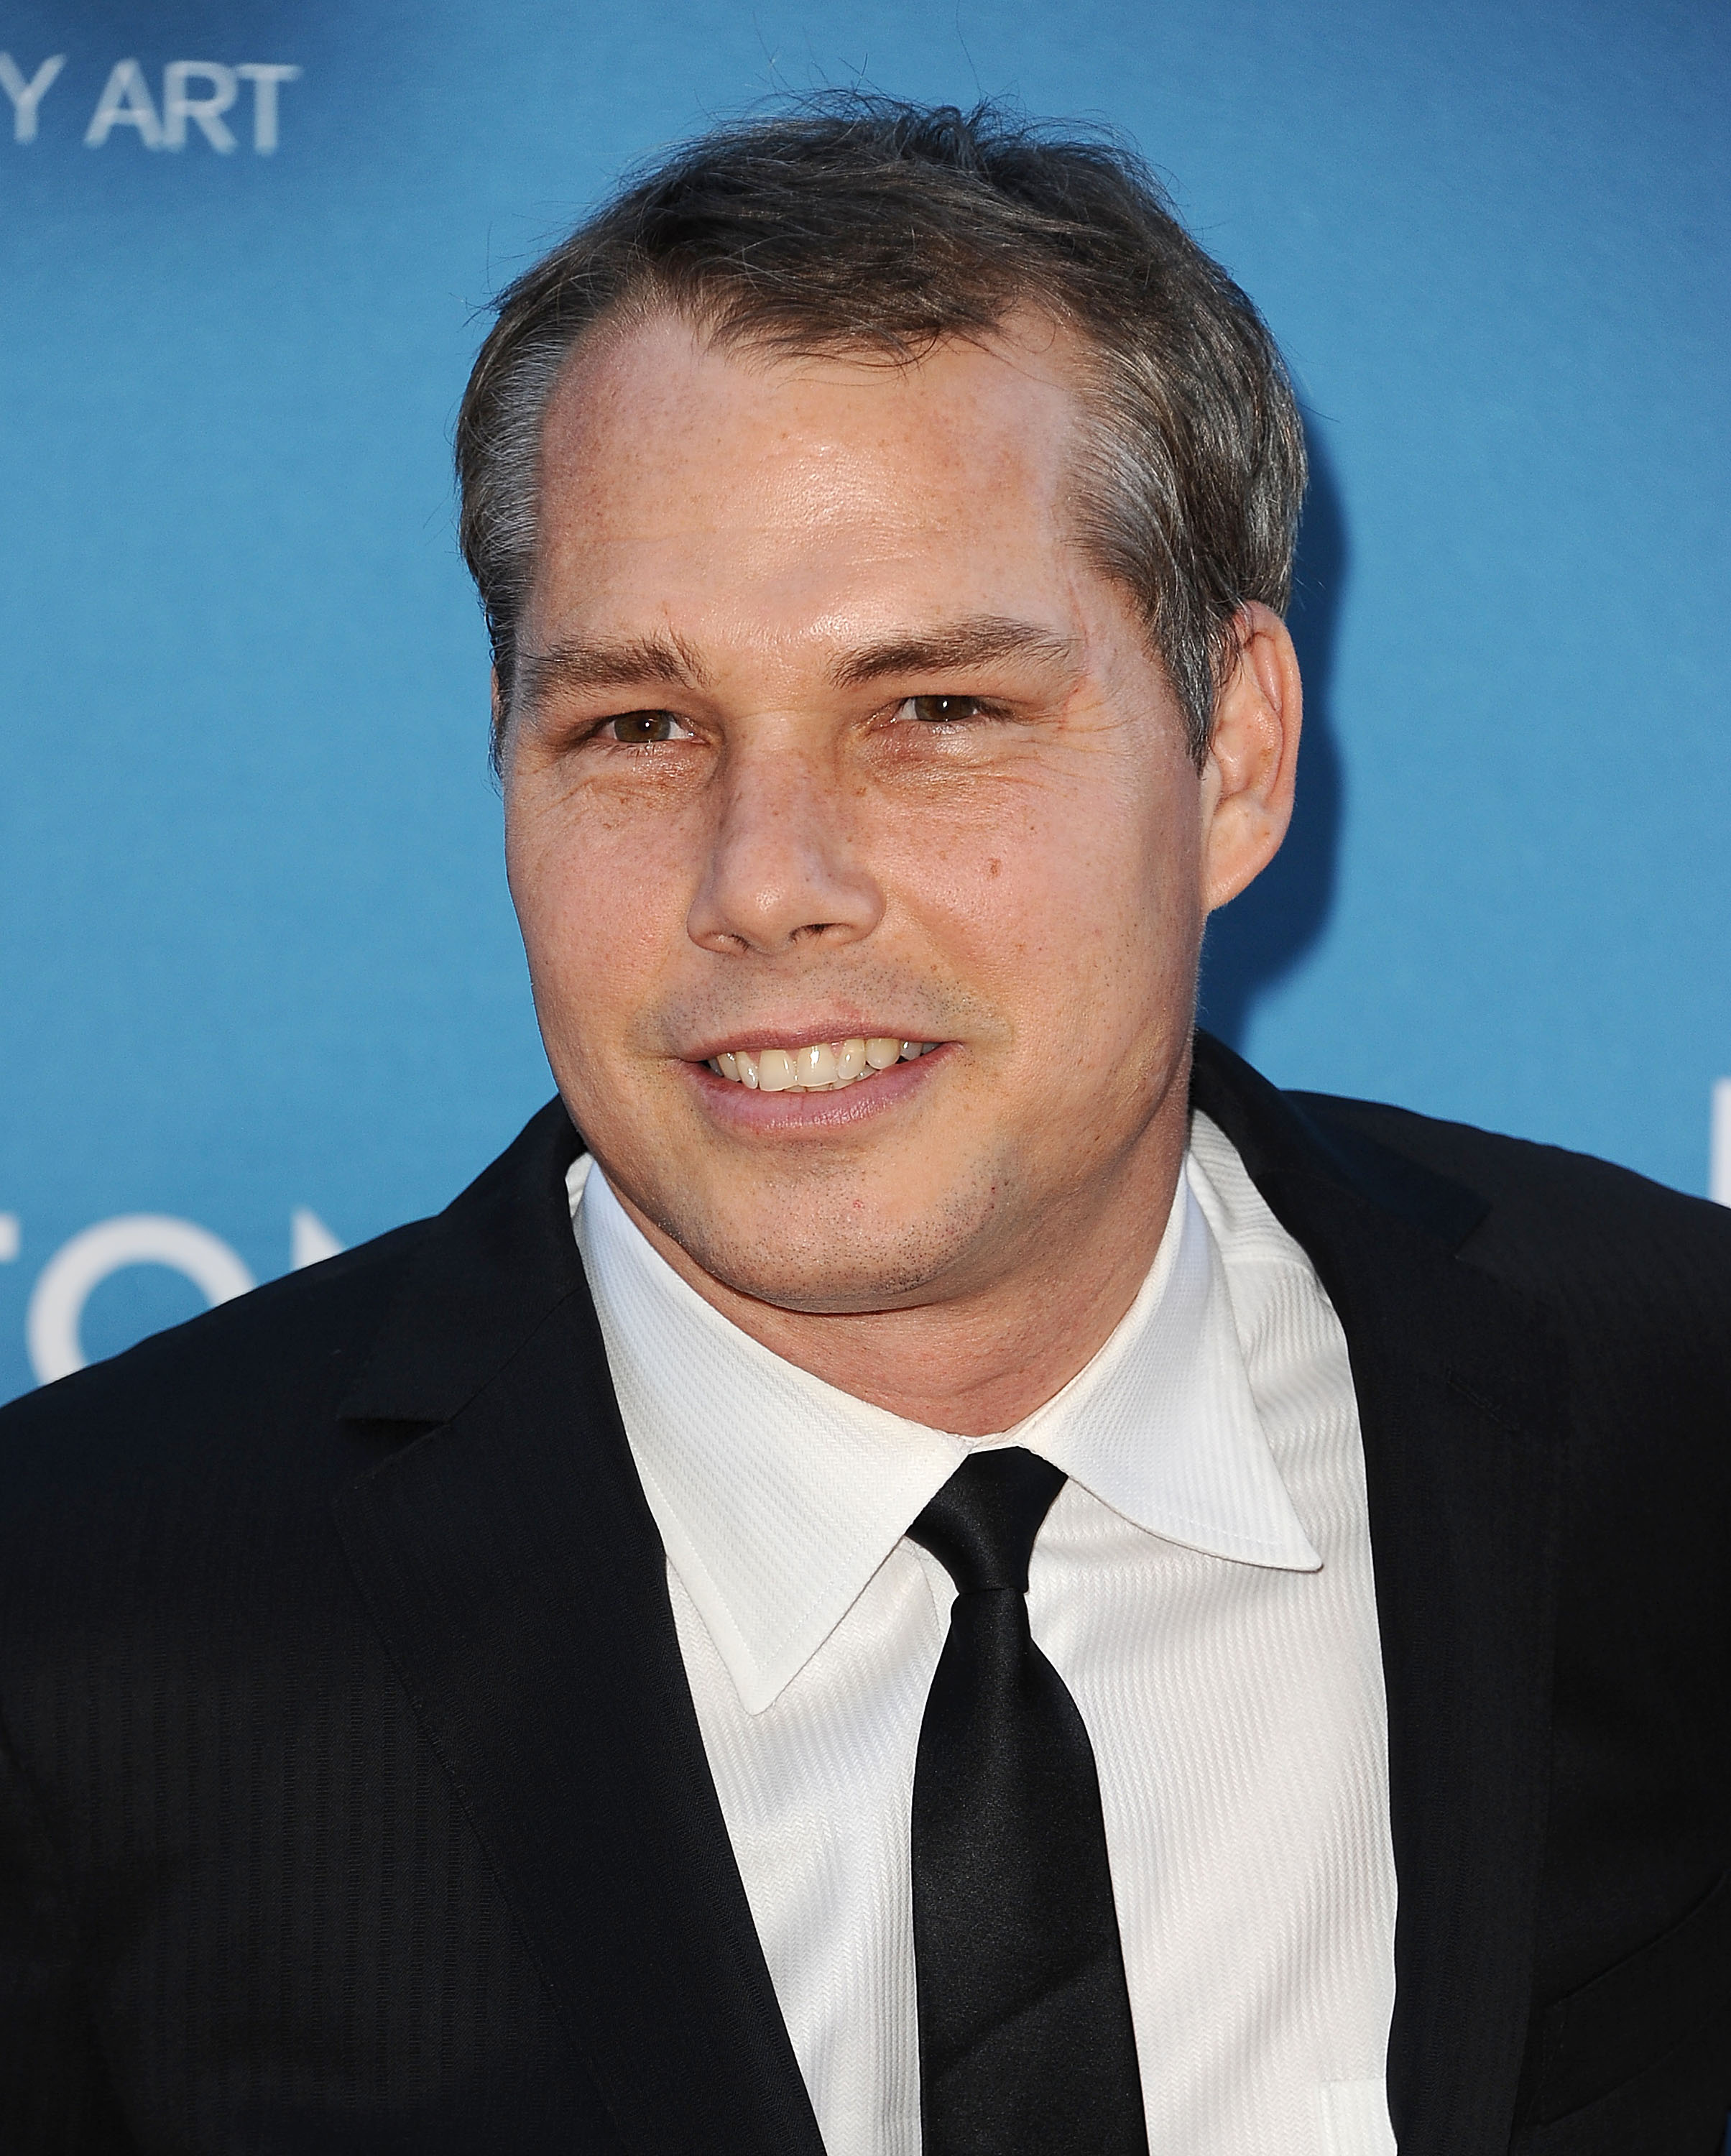 Shepard Fairey attends the 2015 MOCA Gala at The Geffen Contemporary at MOCA on May 30, 2015 in Los Angeles, California.